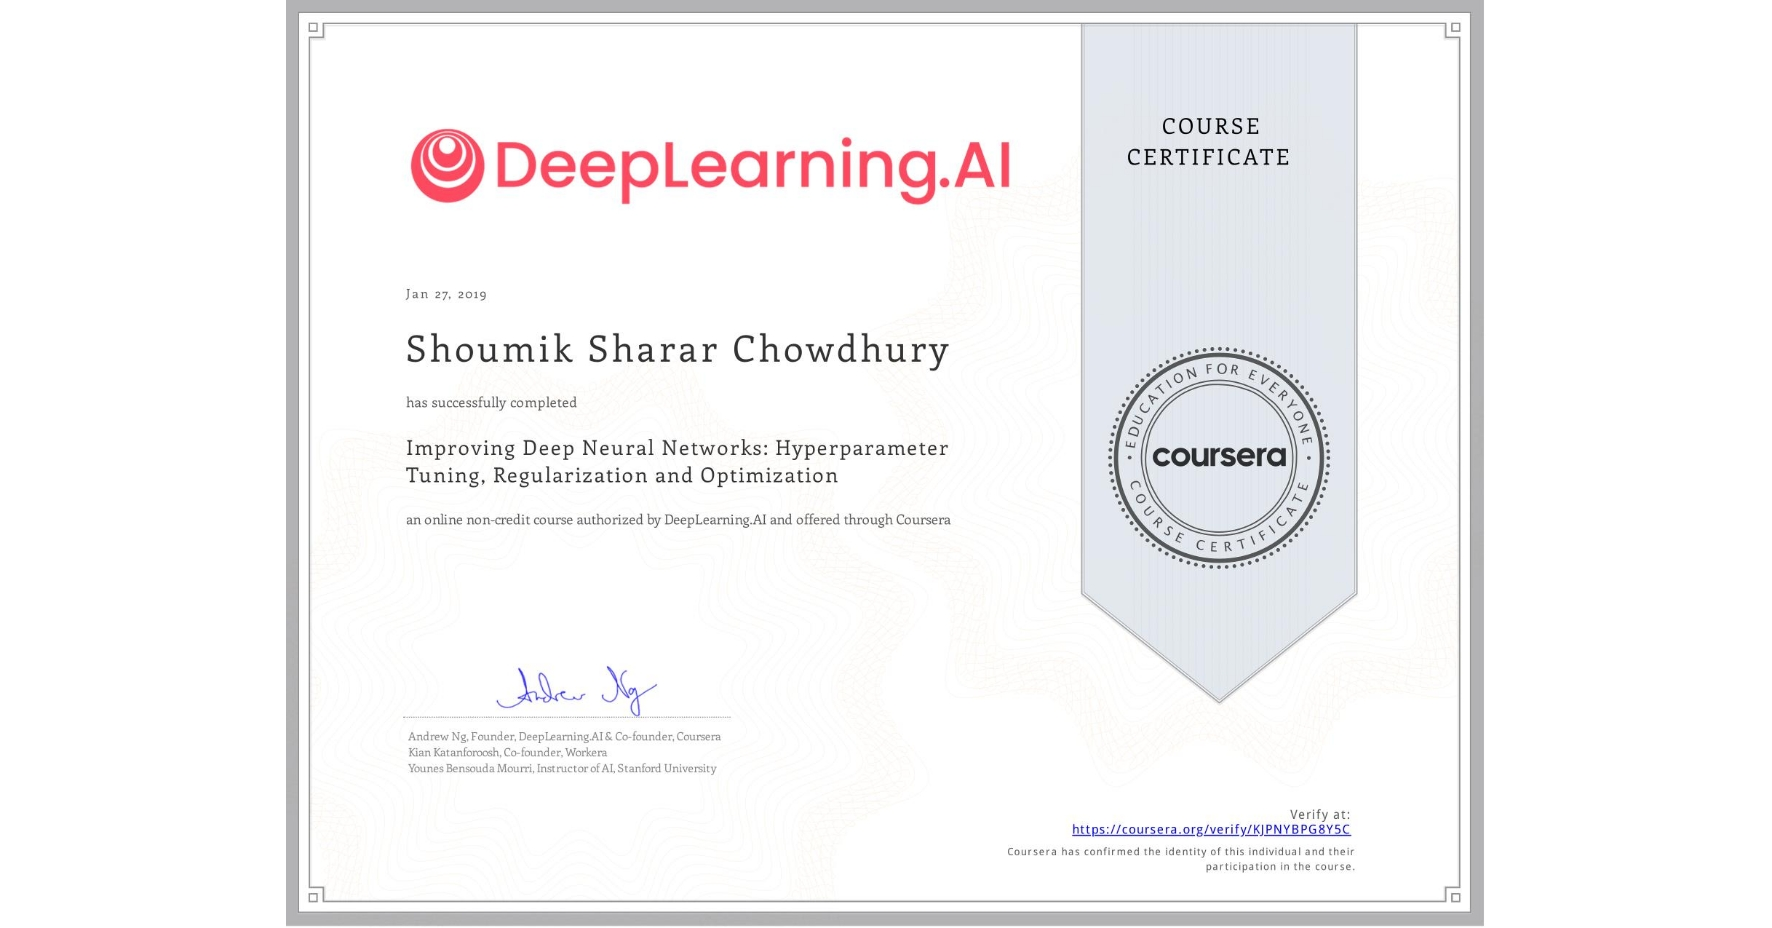 View certificate for Shoumik Sharar Chowdhury, Improving Deep Neural Networks: Hyperparameter Tuning, Regularization and Optimization, an online non-credit course authorized by DeepLearning.AI and offered through Coursera